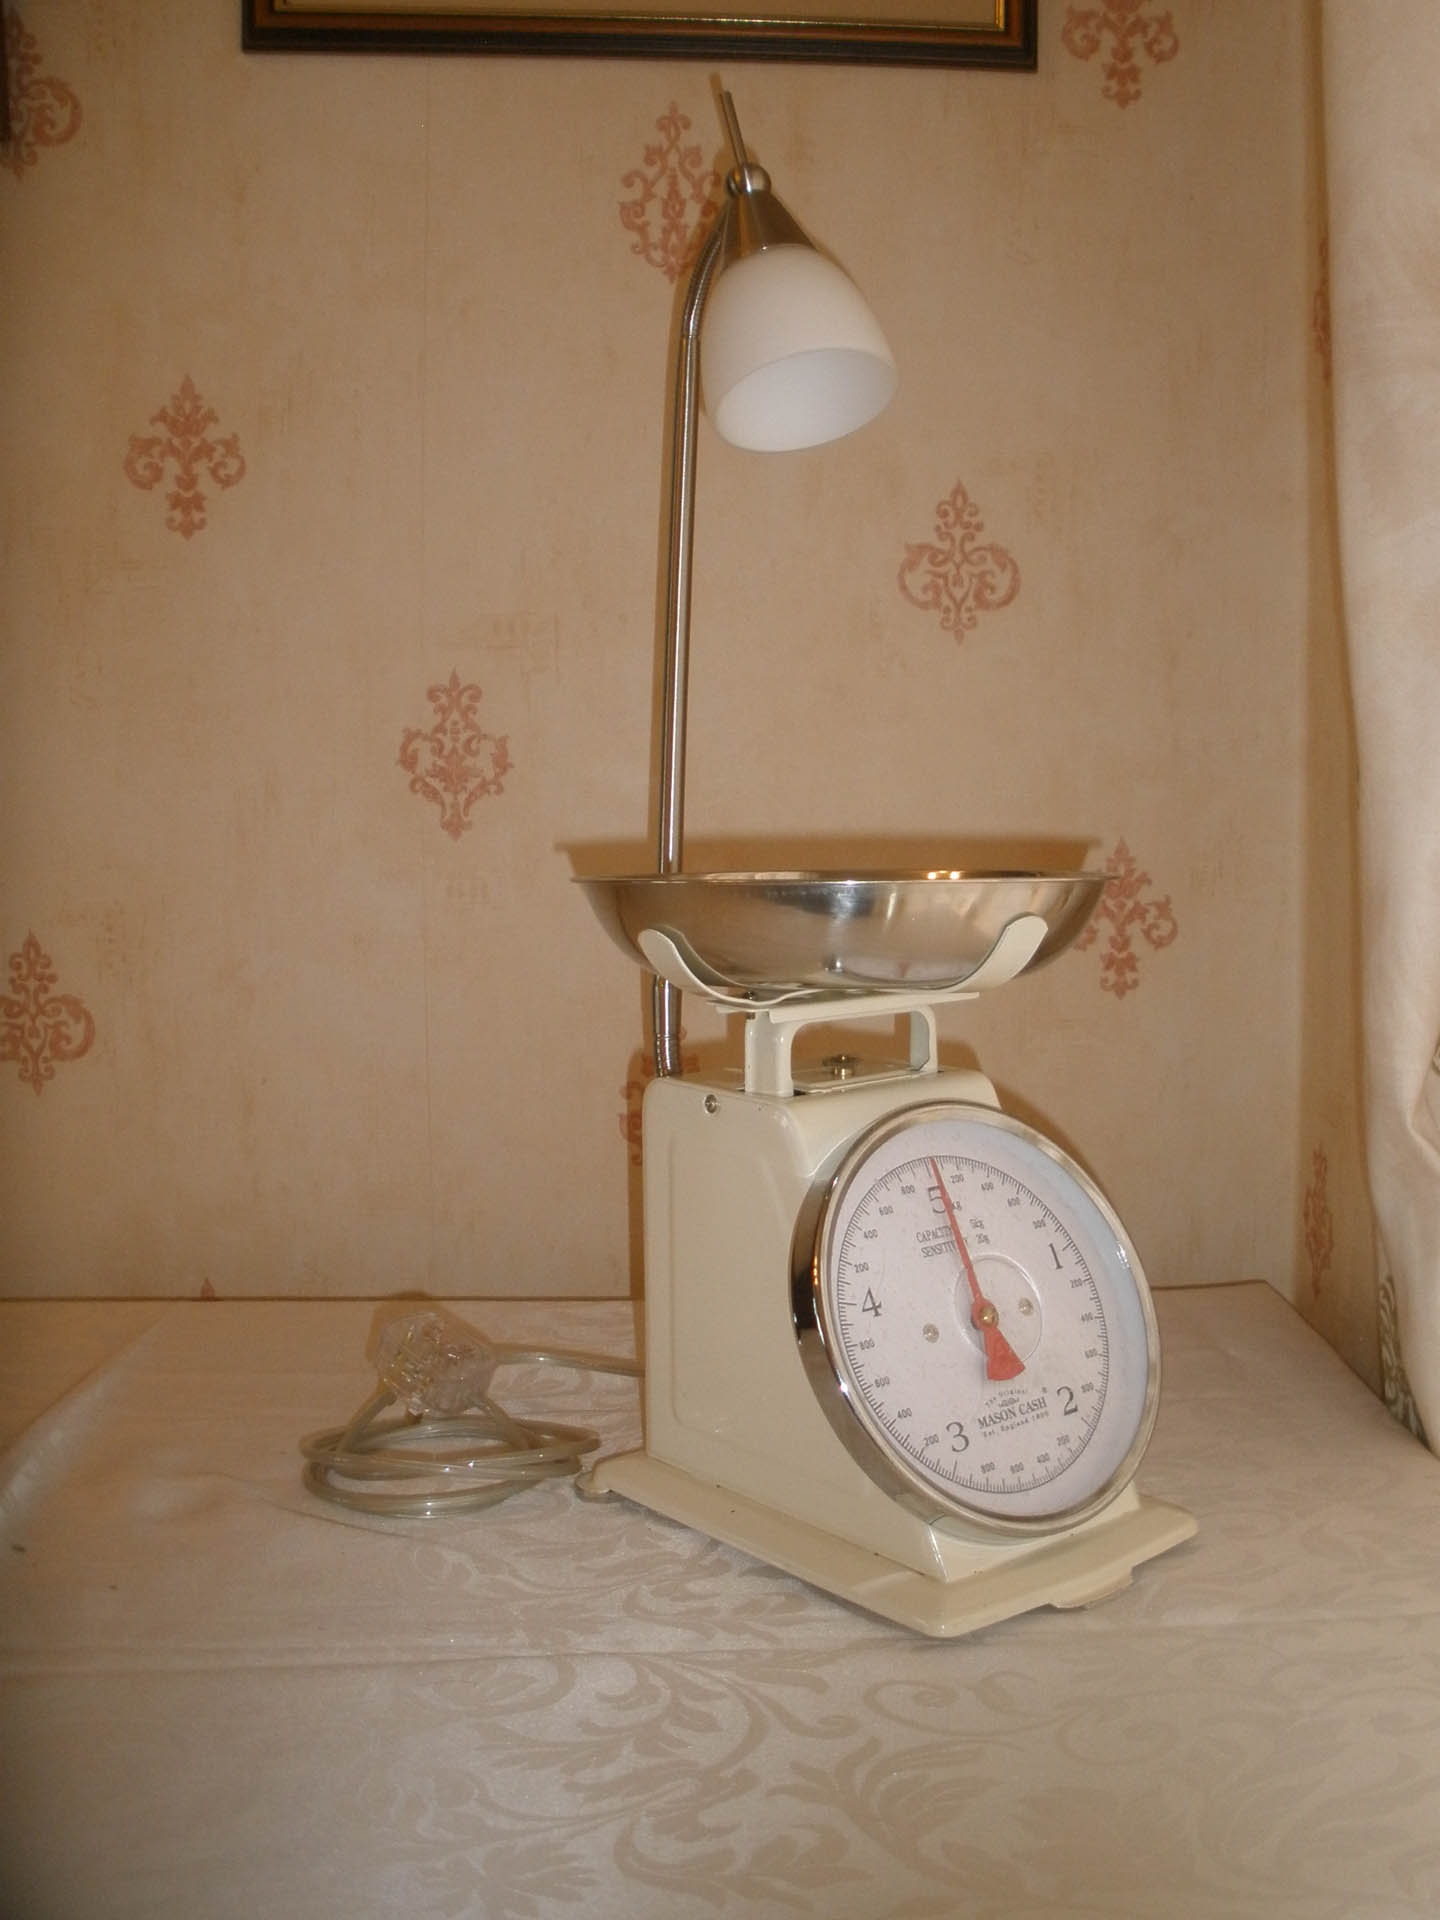 Old Style Kitchen Scales cw Adjustable light